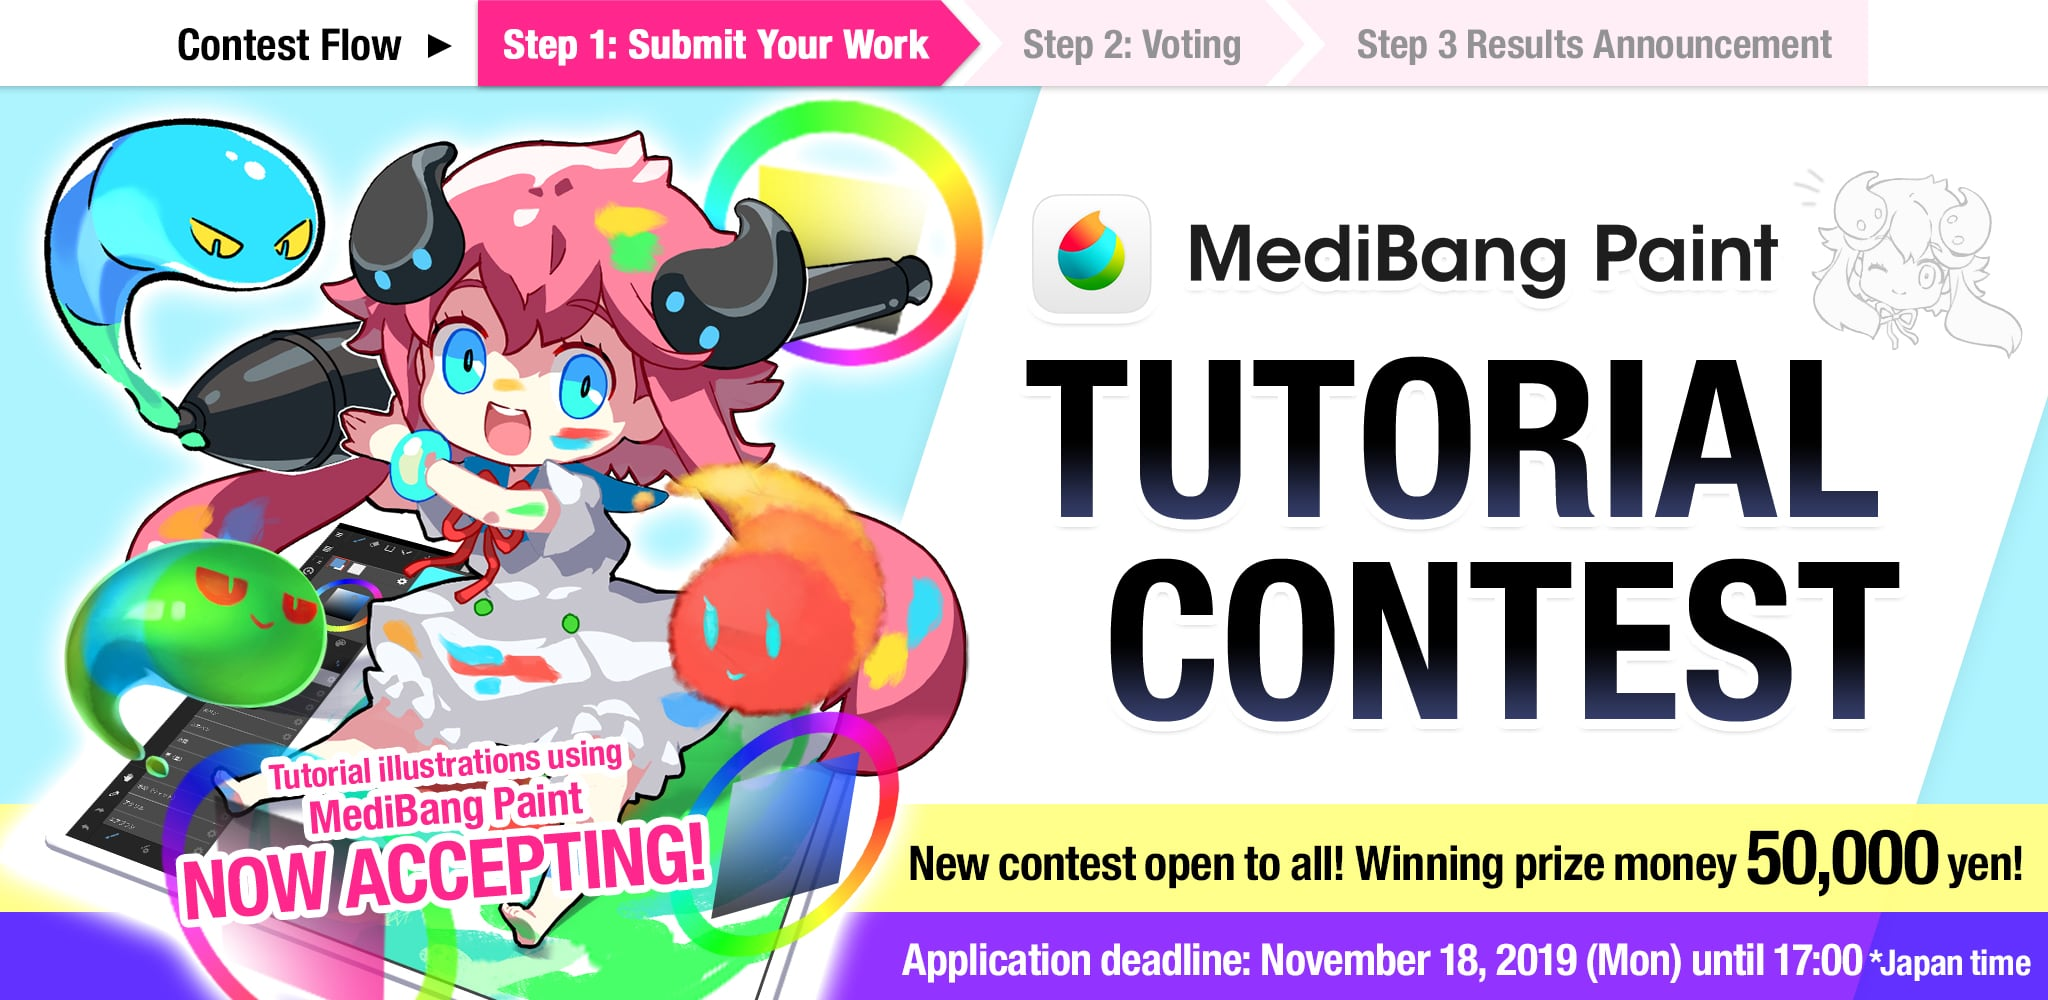 MediBang Paint Tutorial Contest | Contest - ART street by MediBang